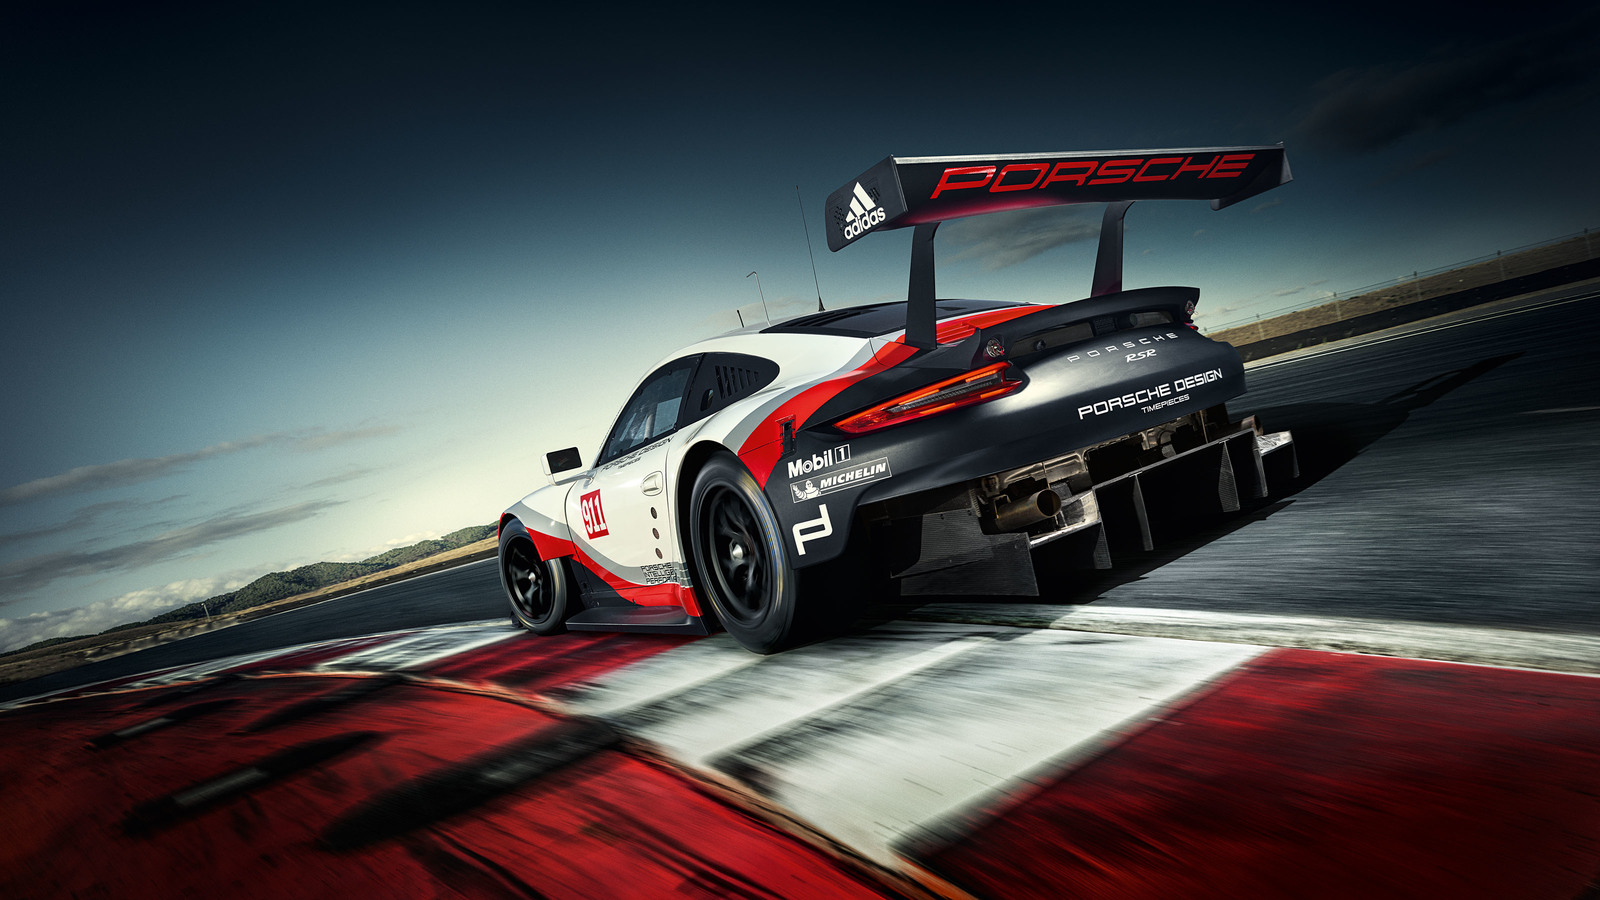 Toyota Supra Concept 2017 >> 2017 Porsche 911 RSR racer adopts mid-engined layout - ForceGT.com